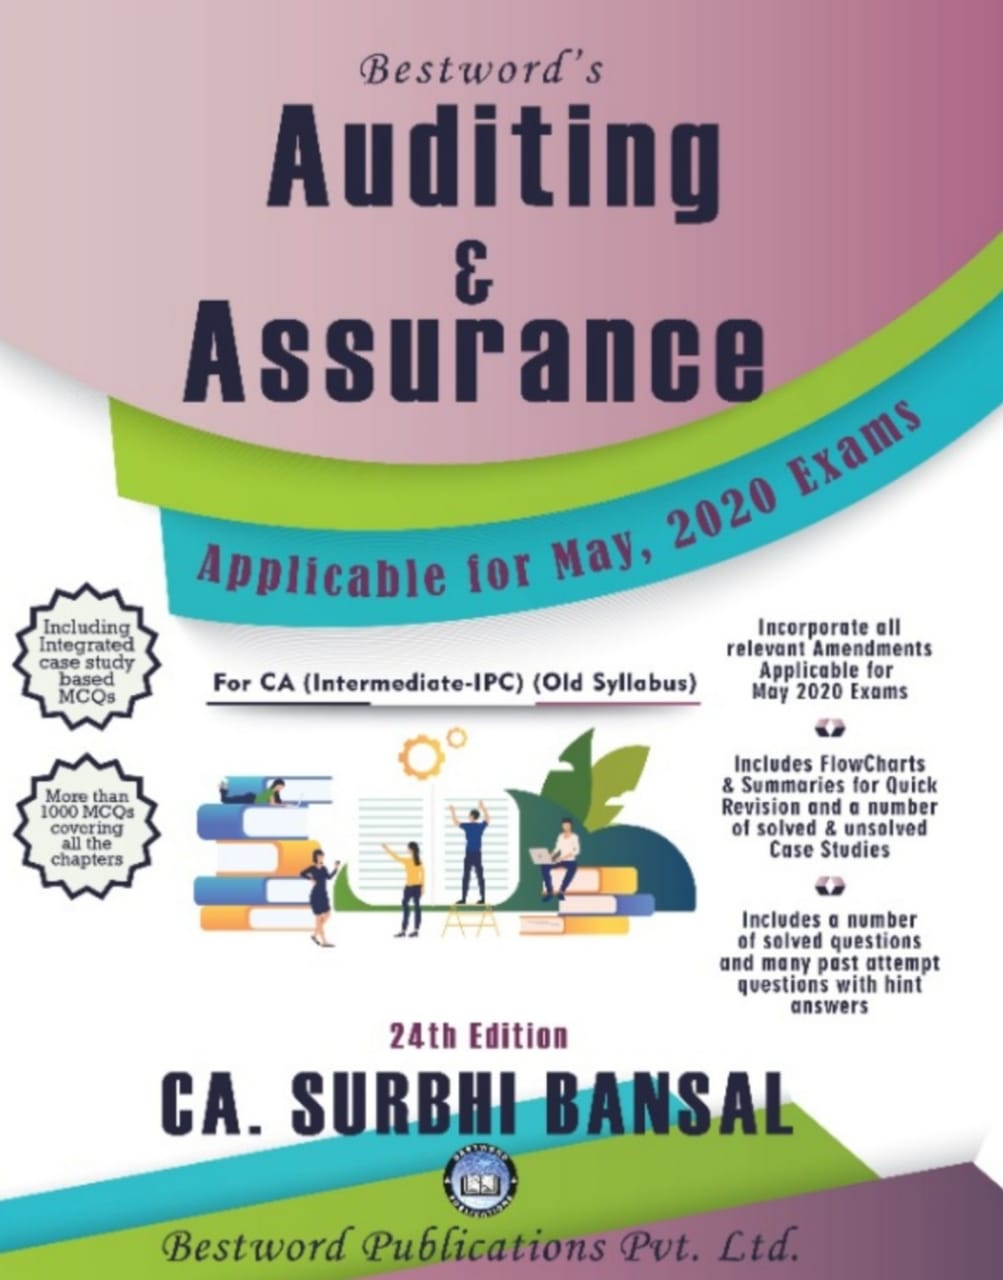 bestword's-auditing-and--assurance---by-ca-surbhi-bansal-–-24th-edition---for-ca-(ipc)-may,-2020-exams-(old-syllabus)